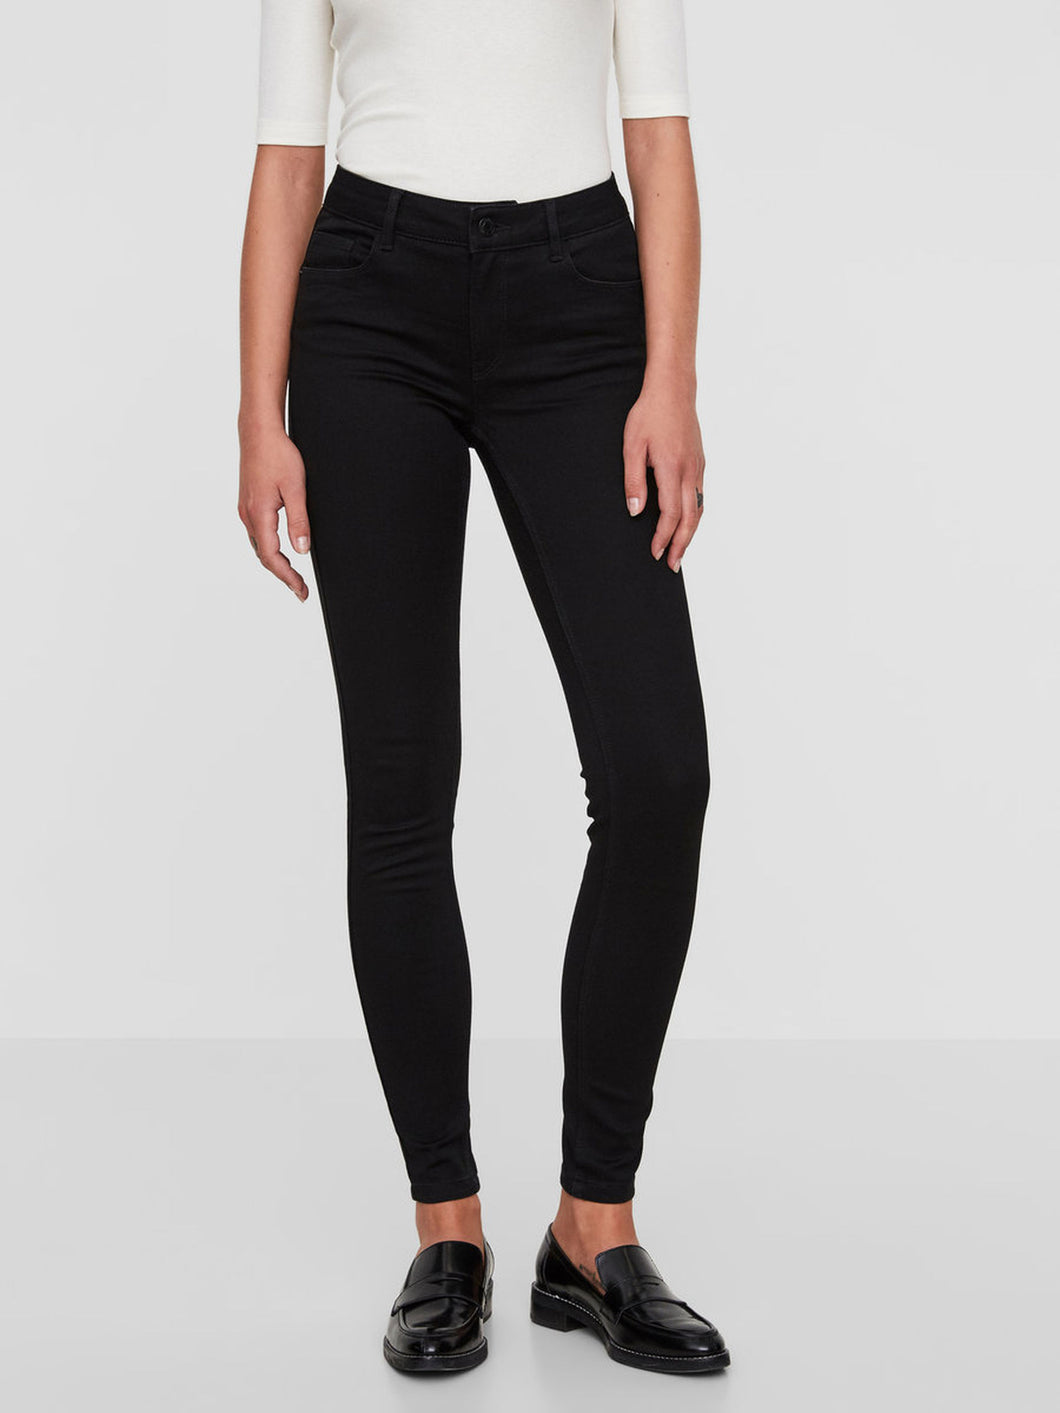 SEVEN NW SHAPE-UP SKINNY FIT JEANS - BLACK